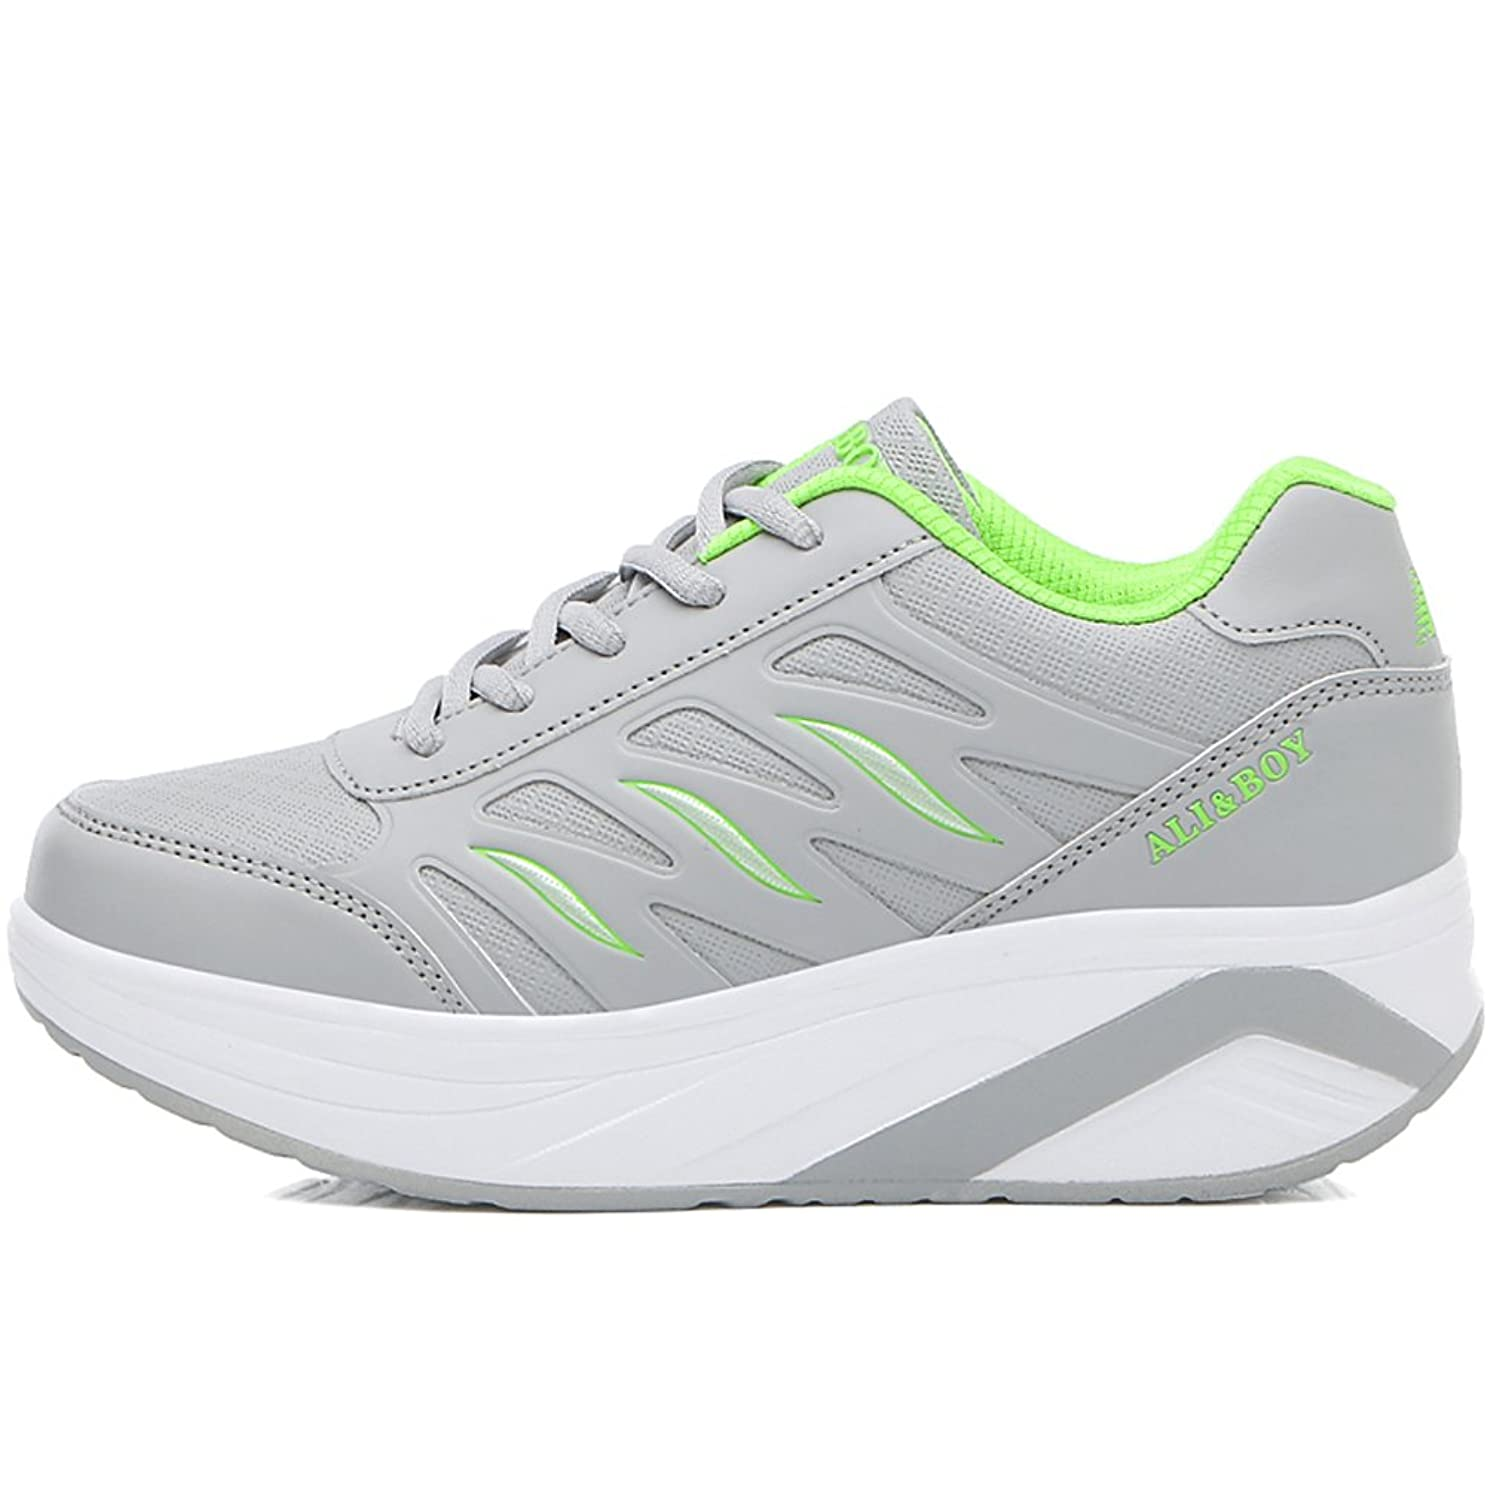 Course Sport Fitness Sneakers Basses Mode Chaussure bfgvyY76